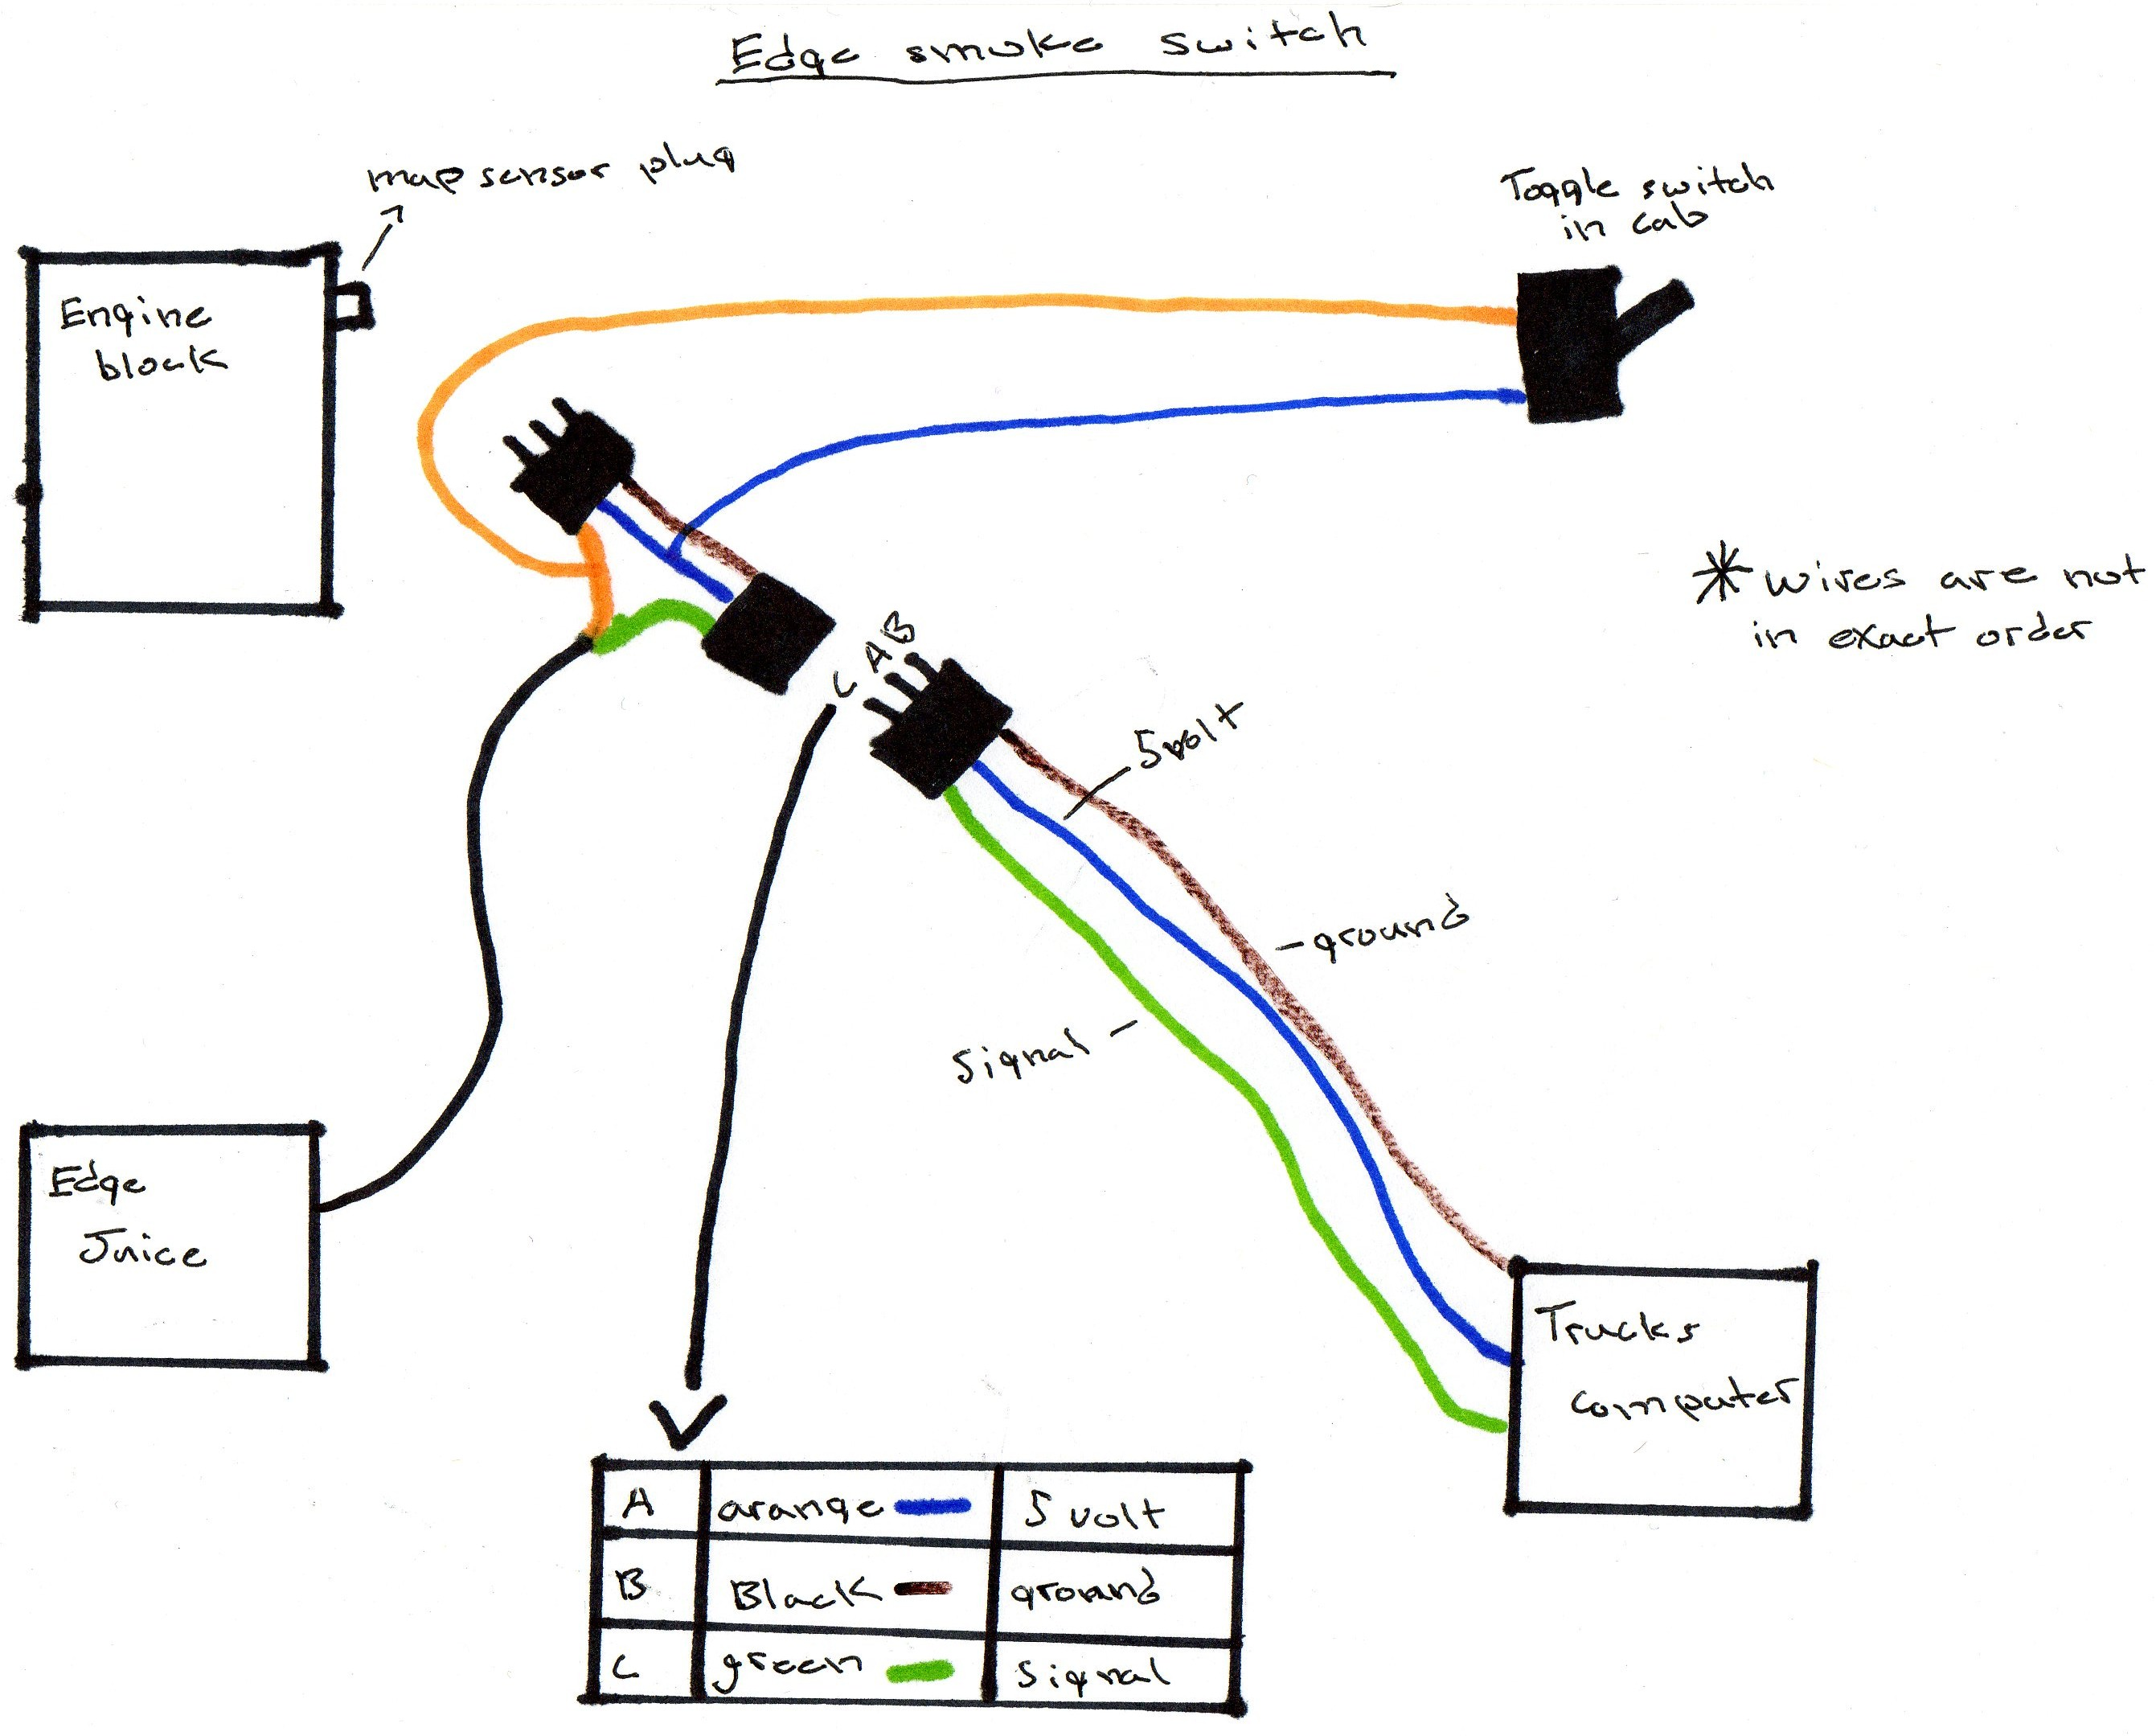 556o4 Nissan Datsun 2000 Nissan Altima No Powr A C  p furthermore View photo furthermore Ignition Relay Switch Location Subaru Outback Click Image Larger Version likewise 62552 Smoke Switch 4 further Freightliner Starter Wiring Diagram. on fan clutch wiring harness diagram